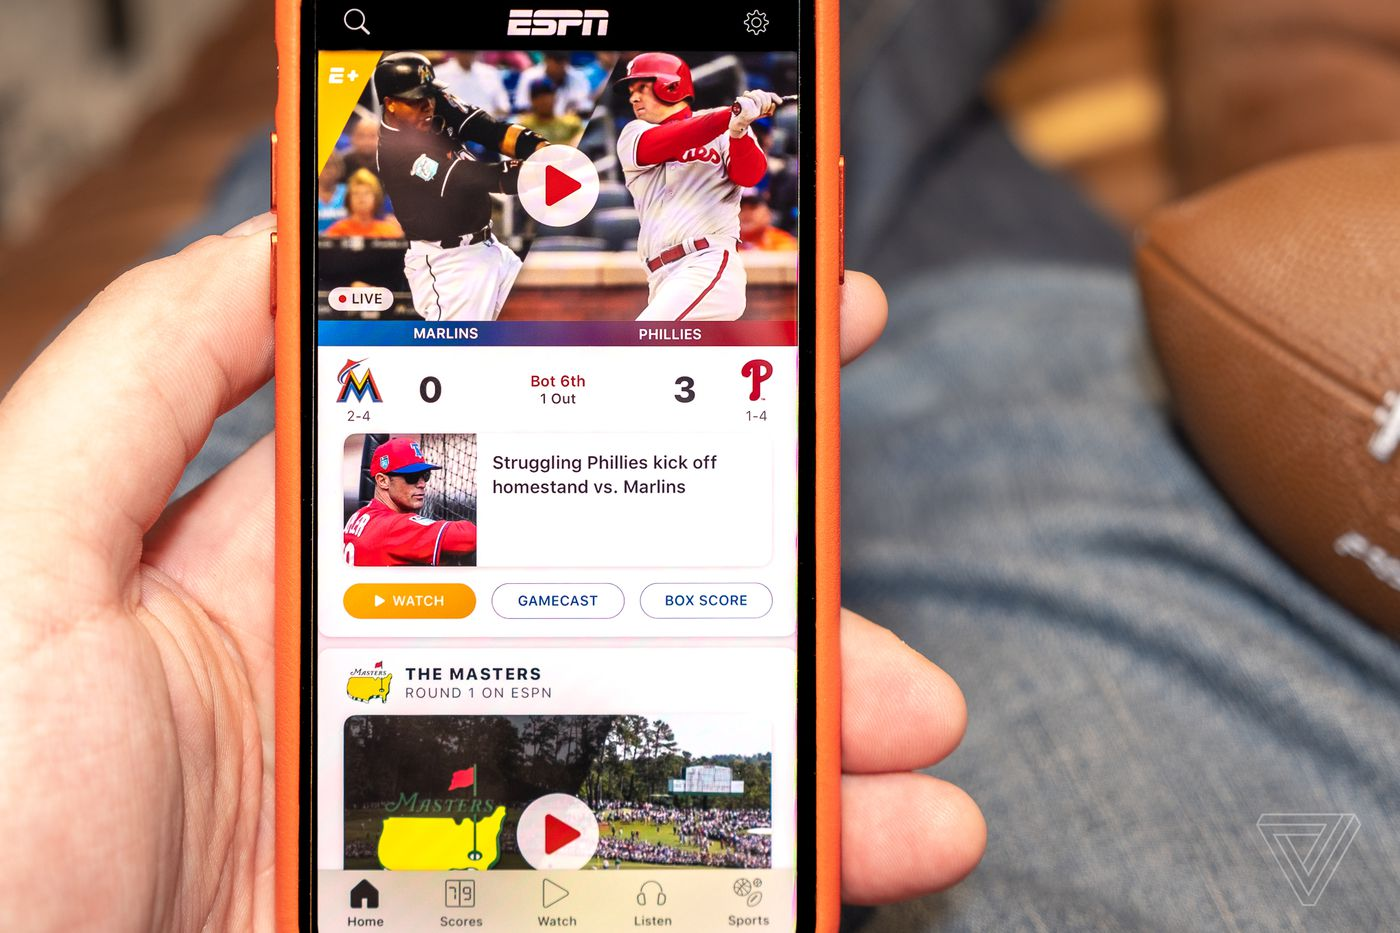 Disney kicks off its streaming future today with ESPN+ - The